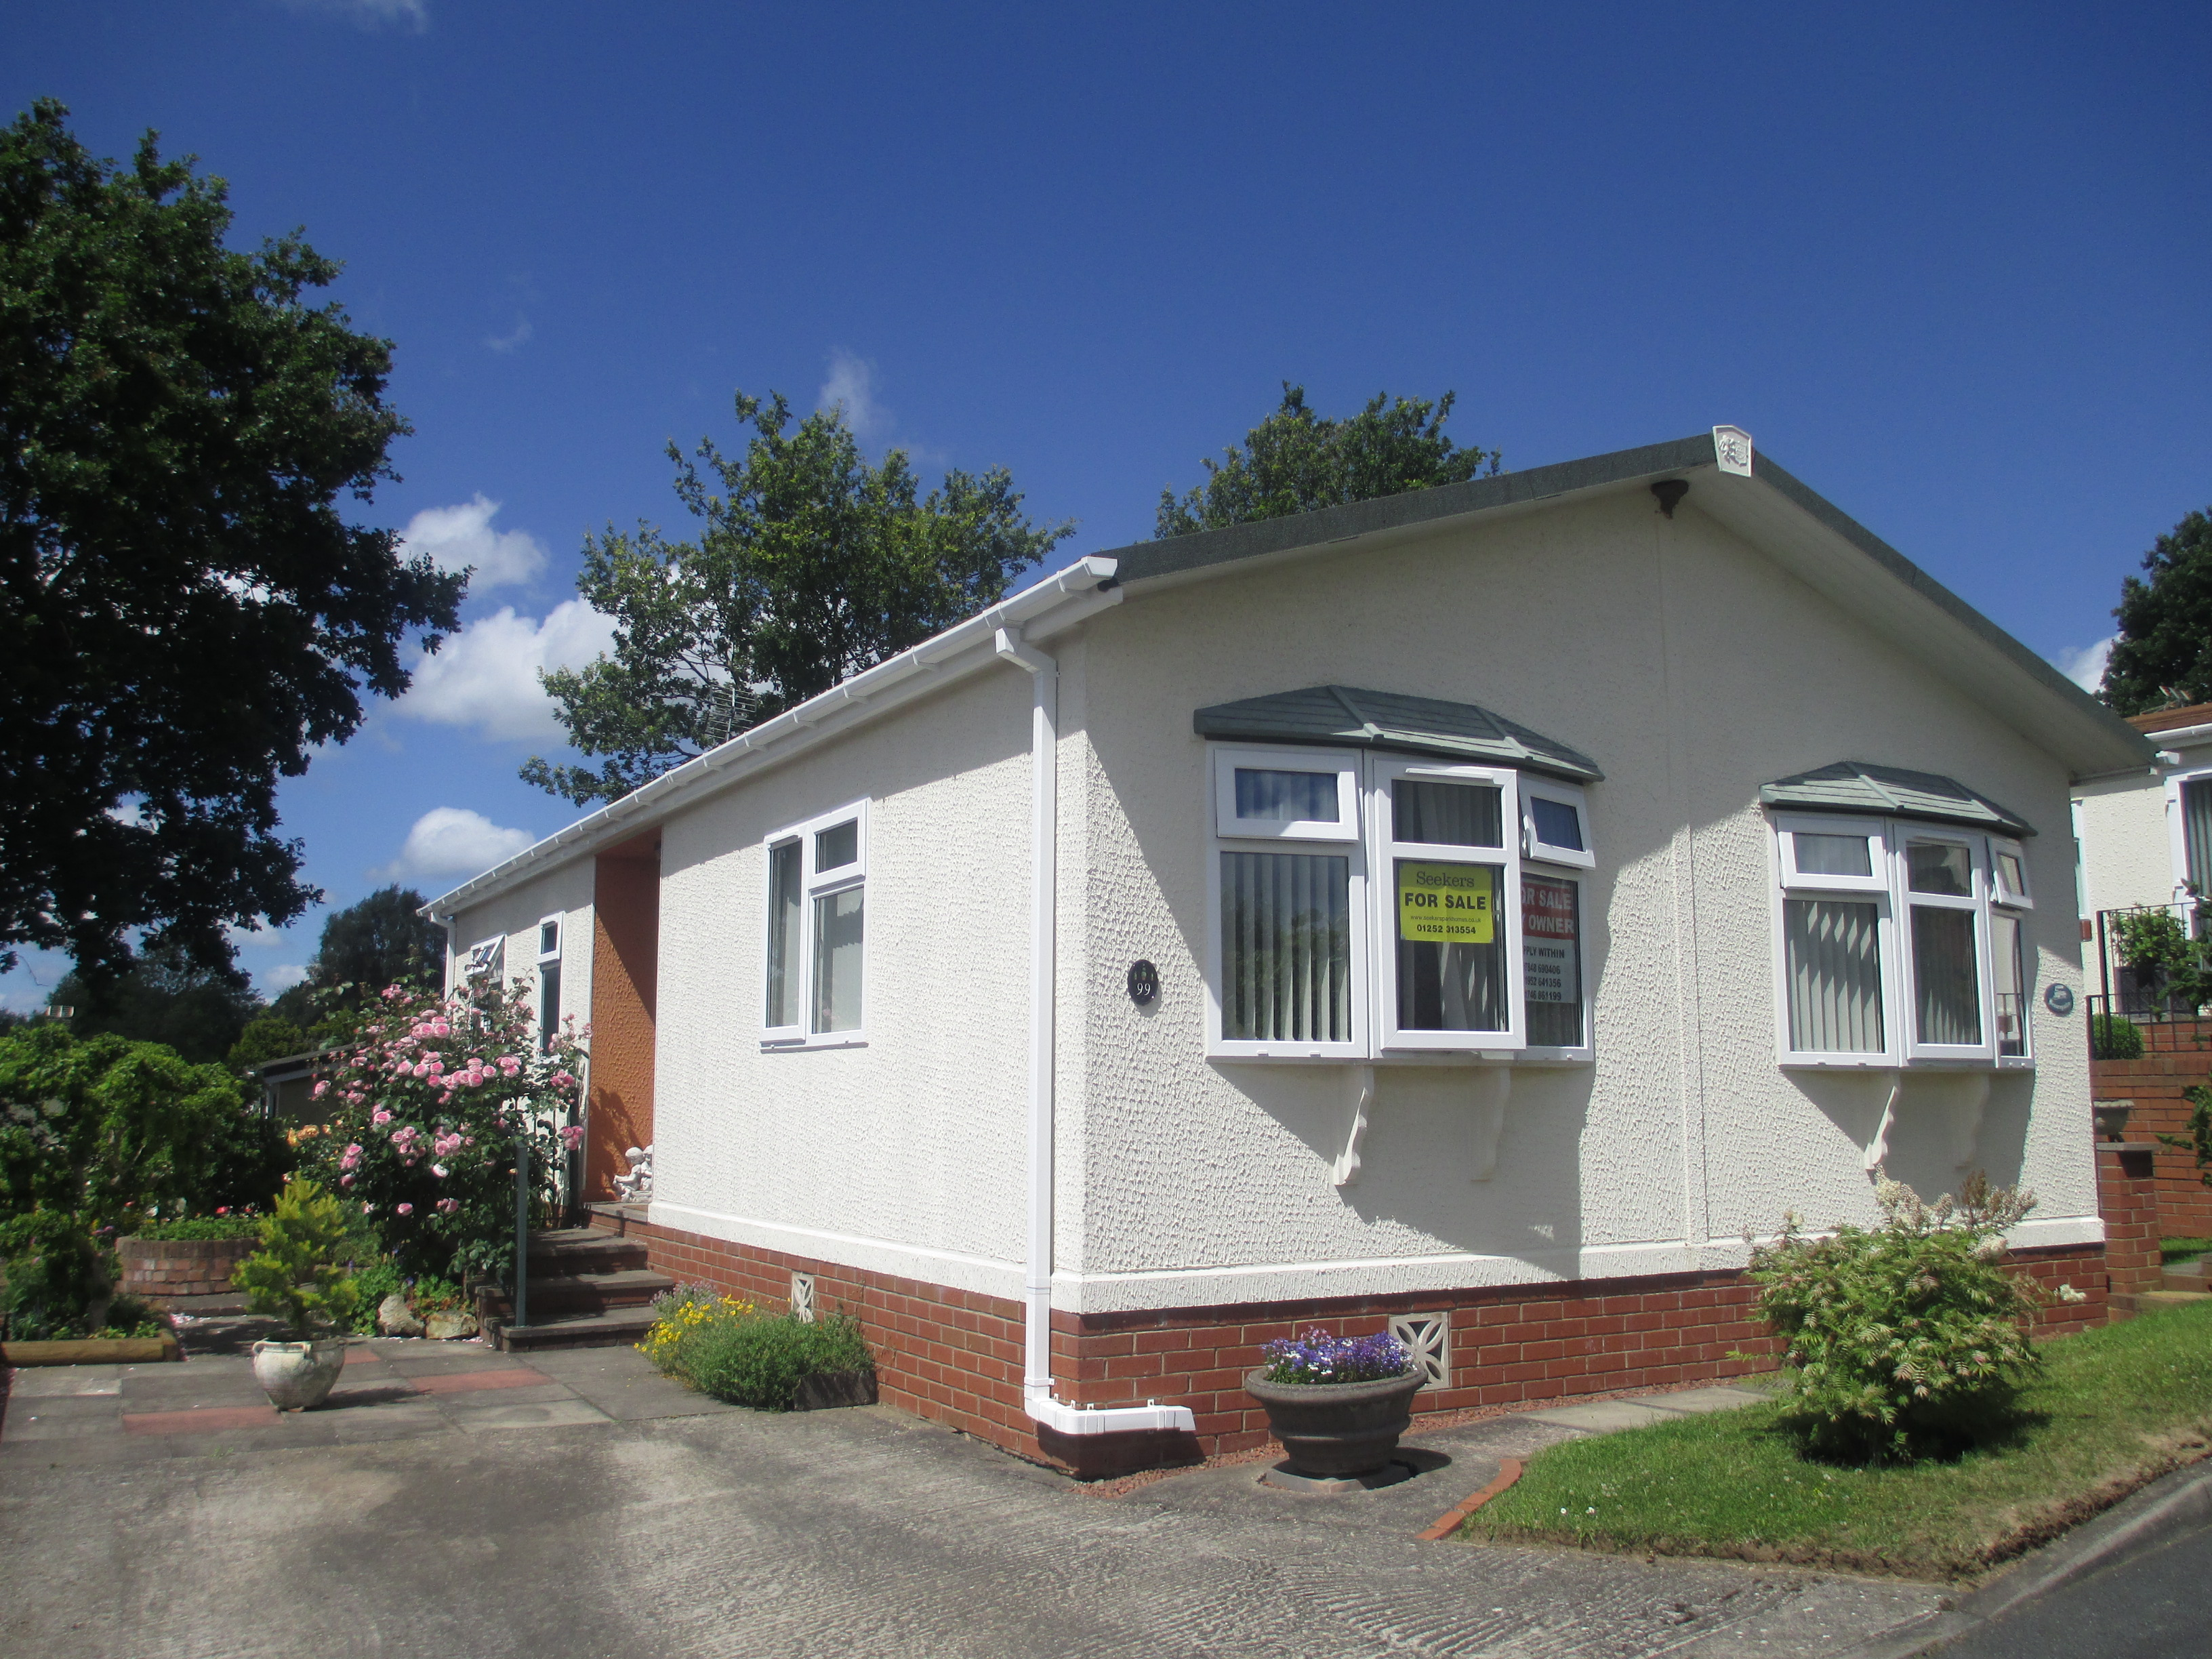 2 Bedroom Mobile Home For Sale Bridgnorth Shropshire Wv16 6nr